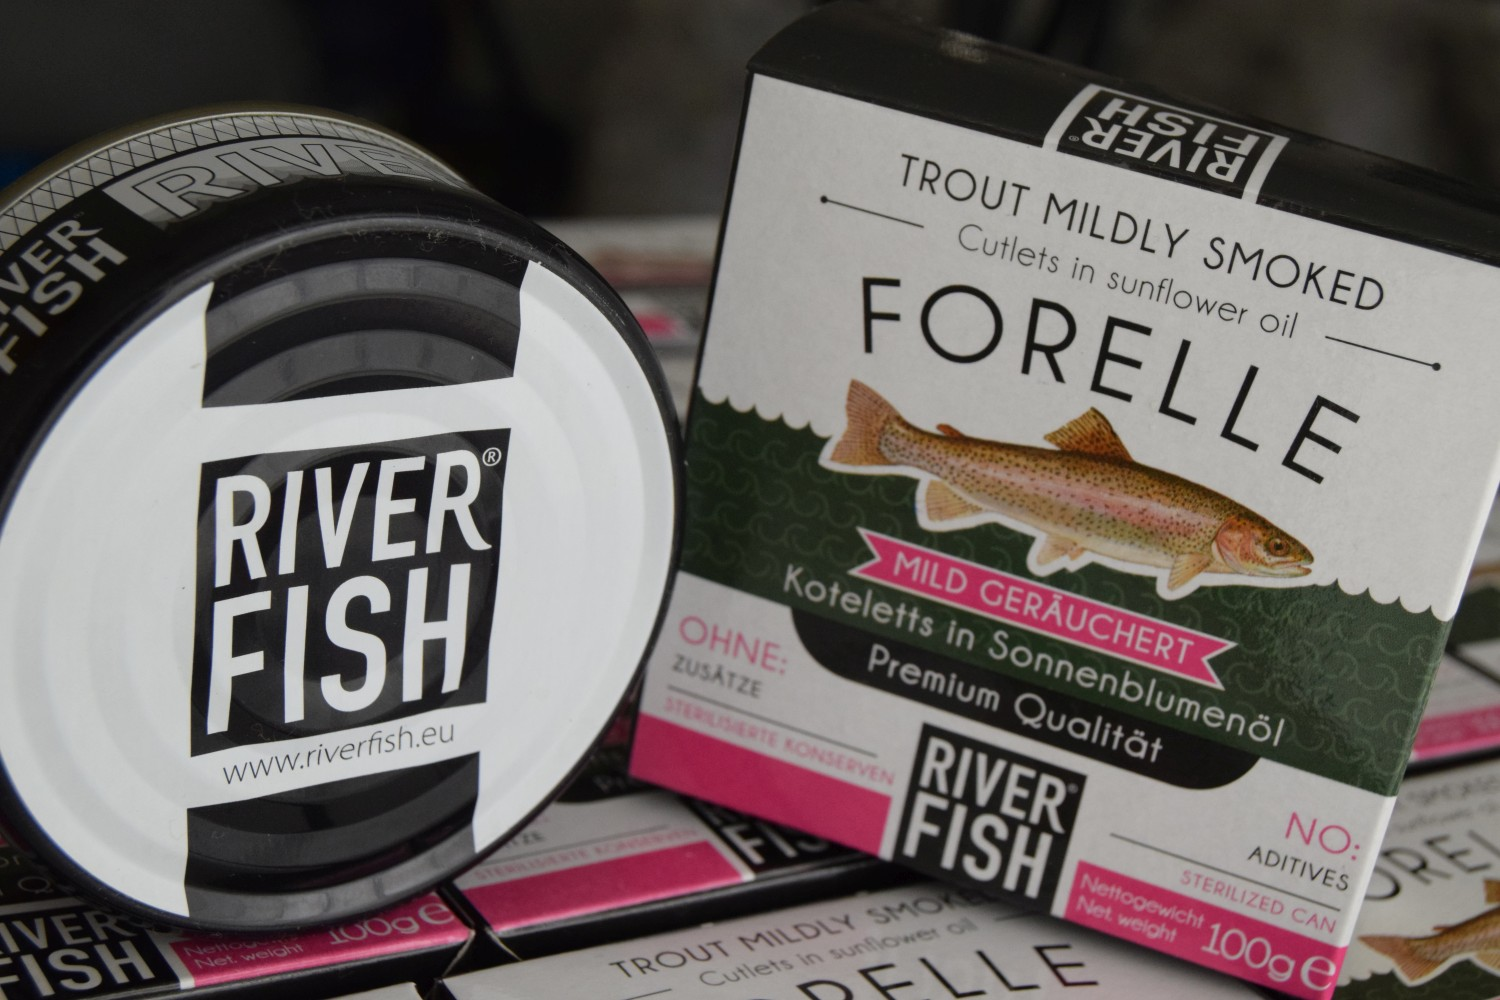 riverfish - Forellenkoteletts mild geräuchert